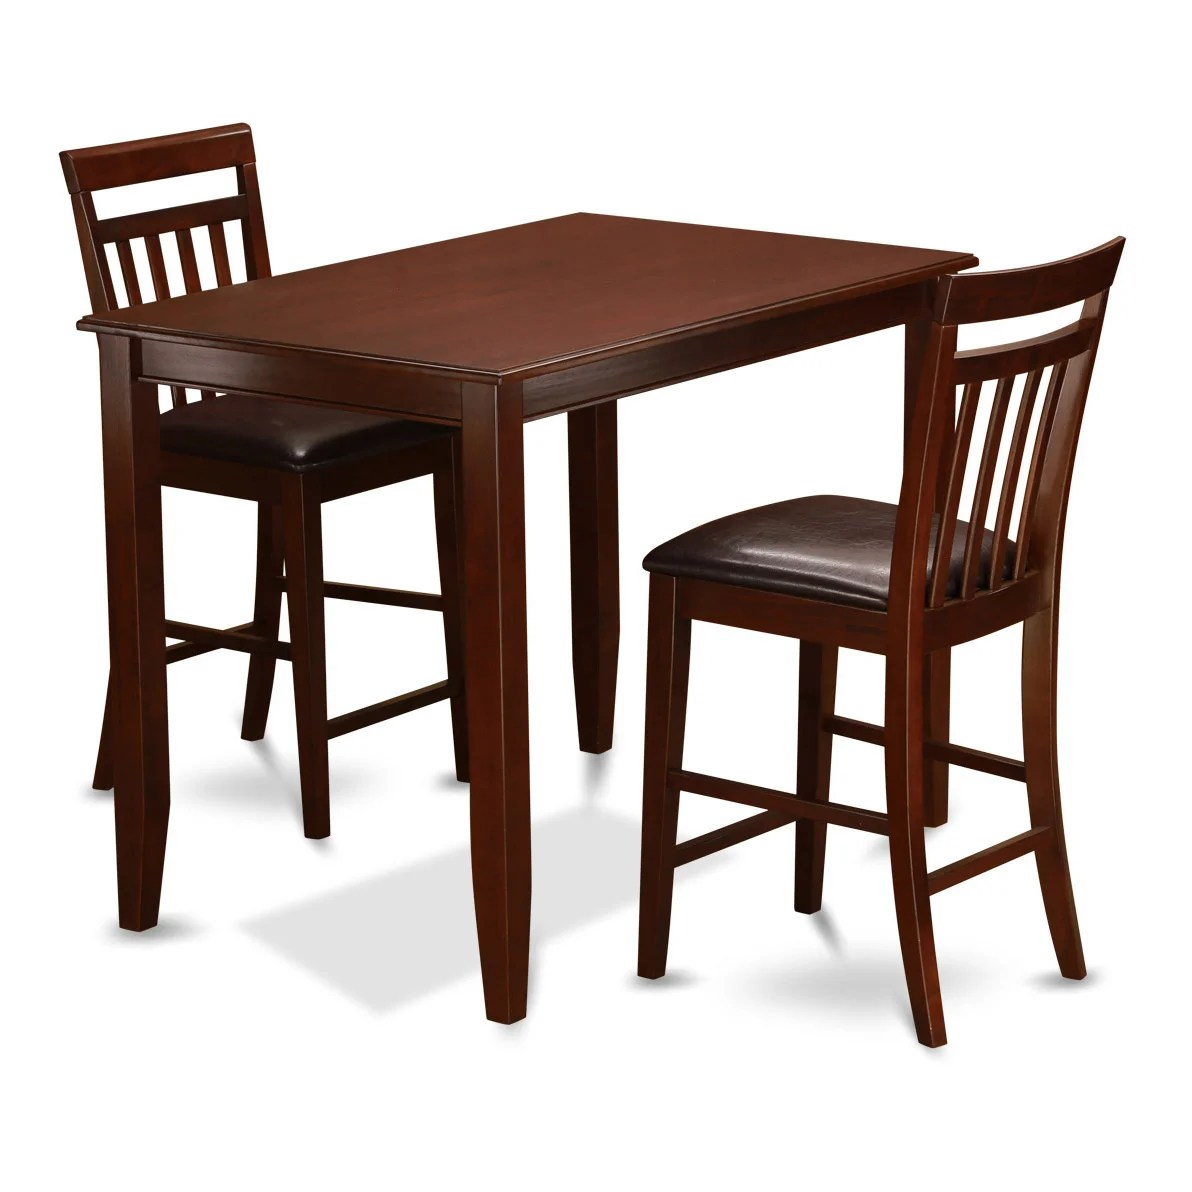 3 Pc Pub Table Set counter Height Table and 2 Faux Leather Kitchen Chairs BUEW3 MAH LC